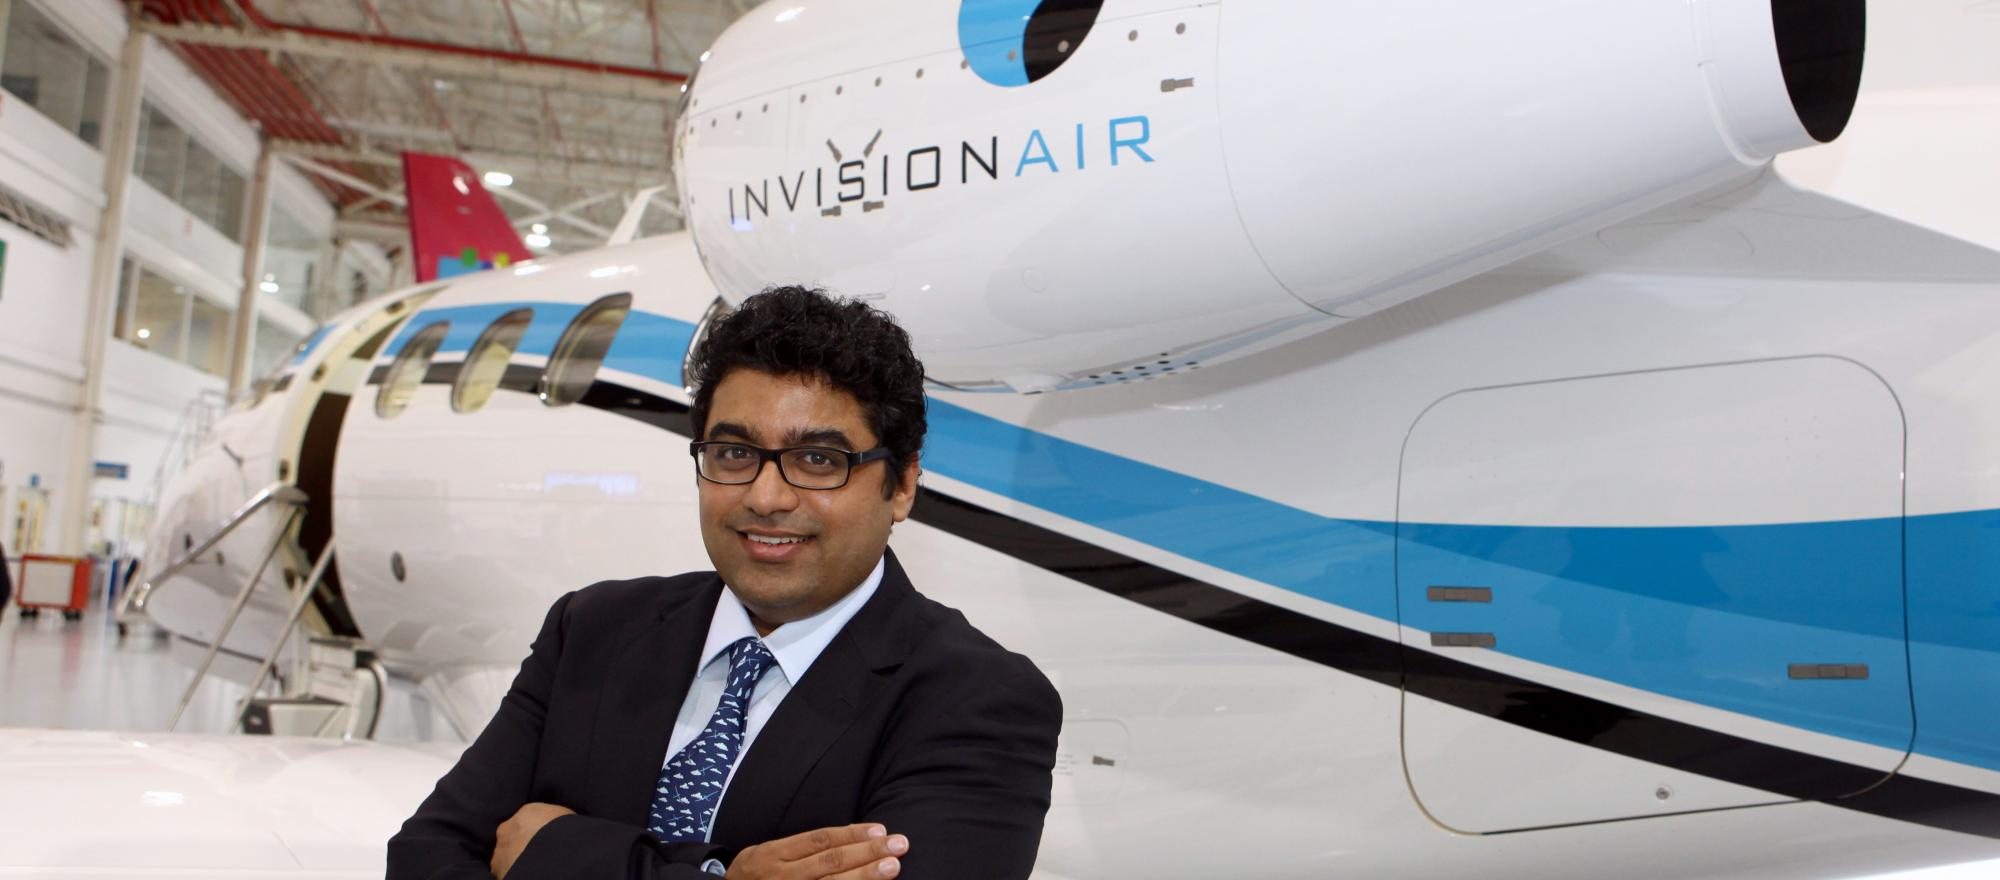 Vinit Phatak, CEO of Invision, which is launching an air charter service in India